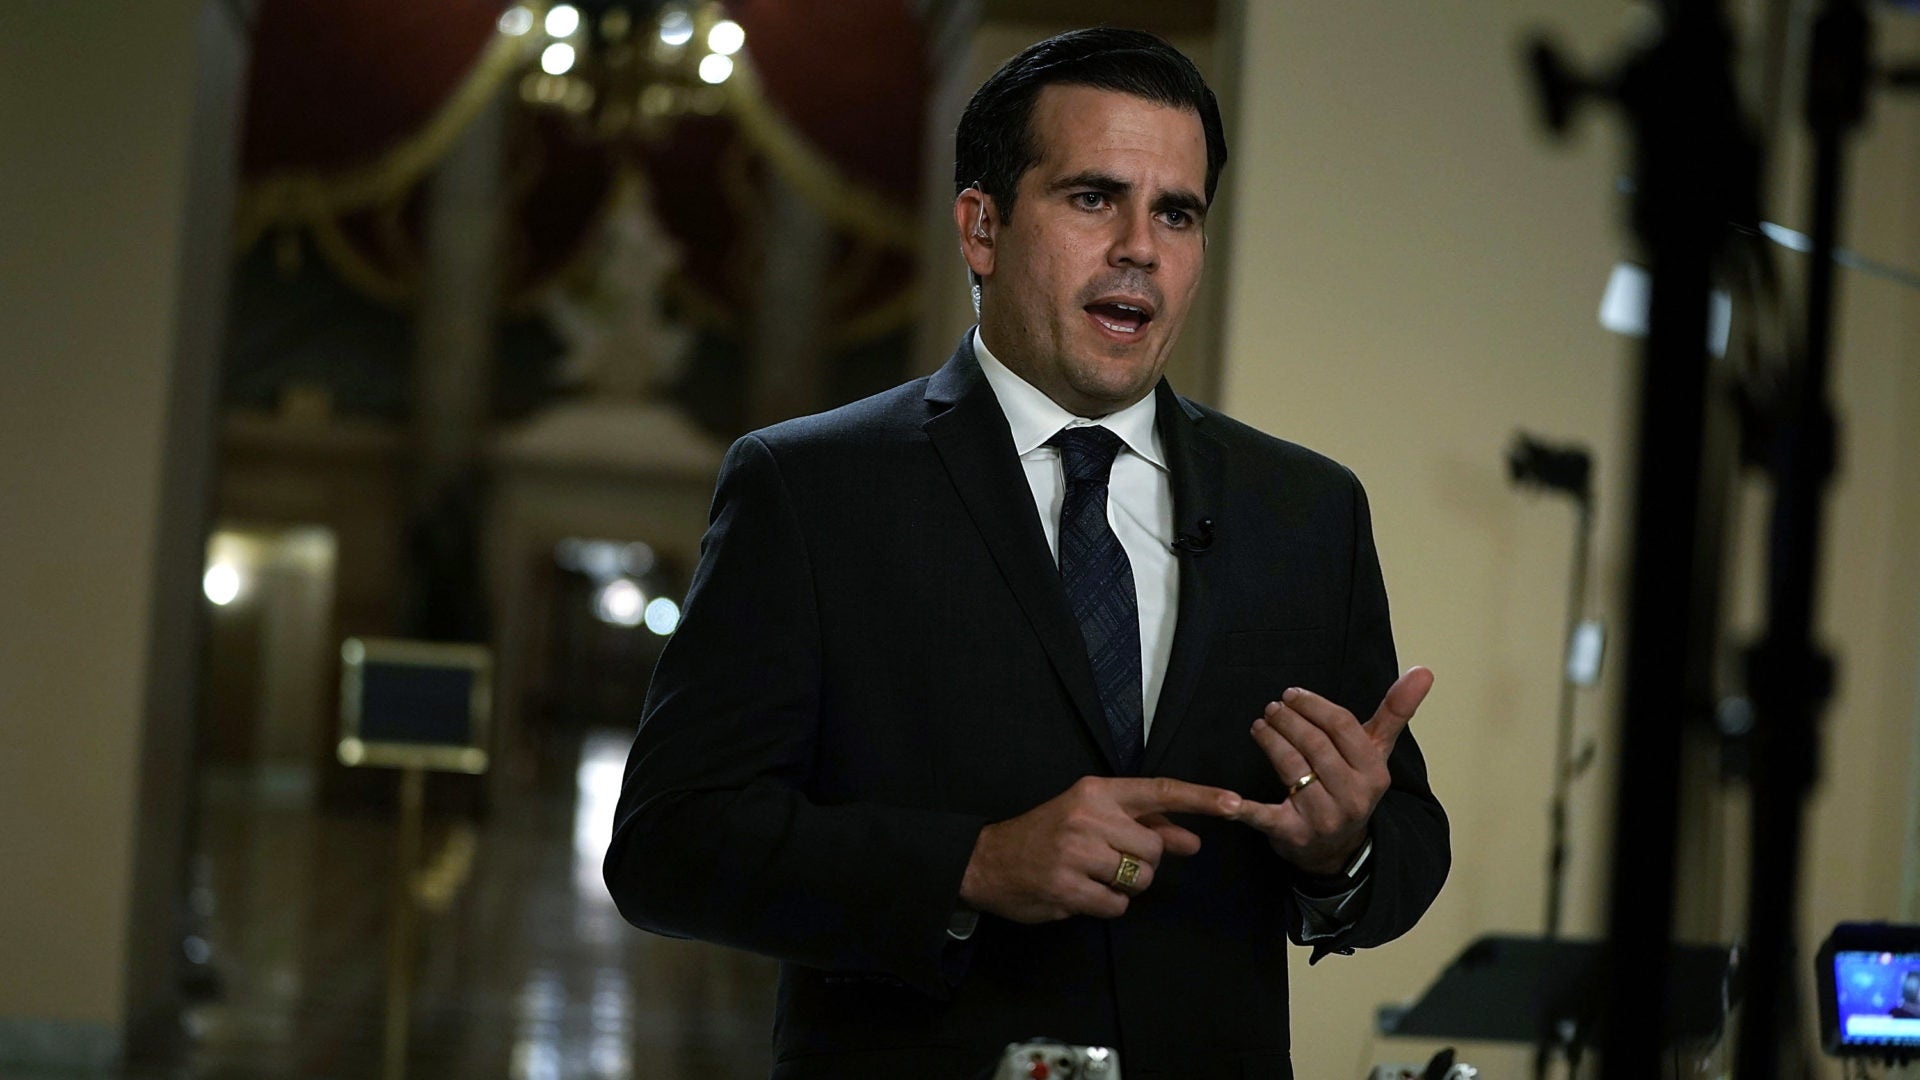 Politicians Call For Puerto Rico Governor To Resign Amid Protests